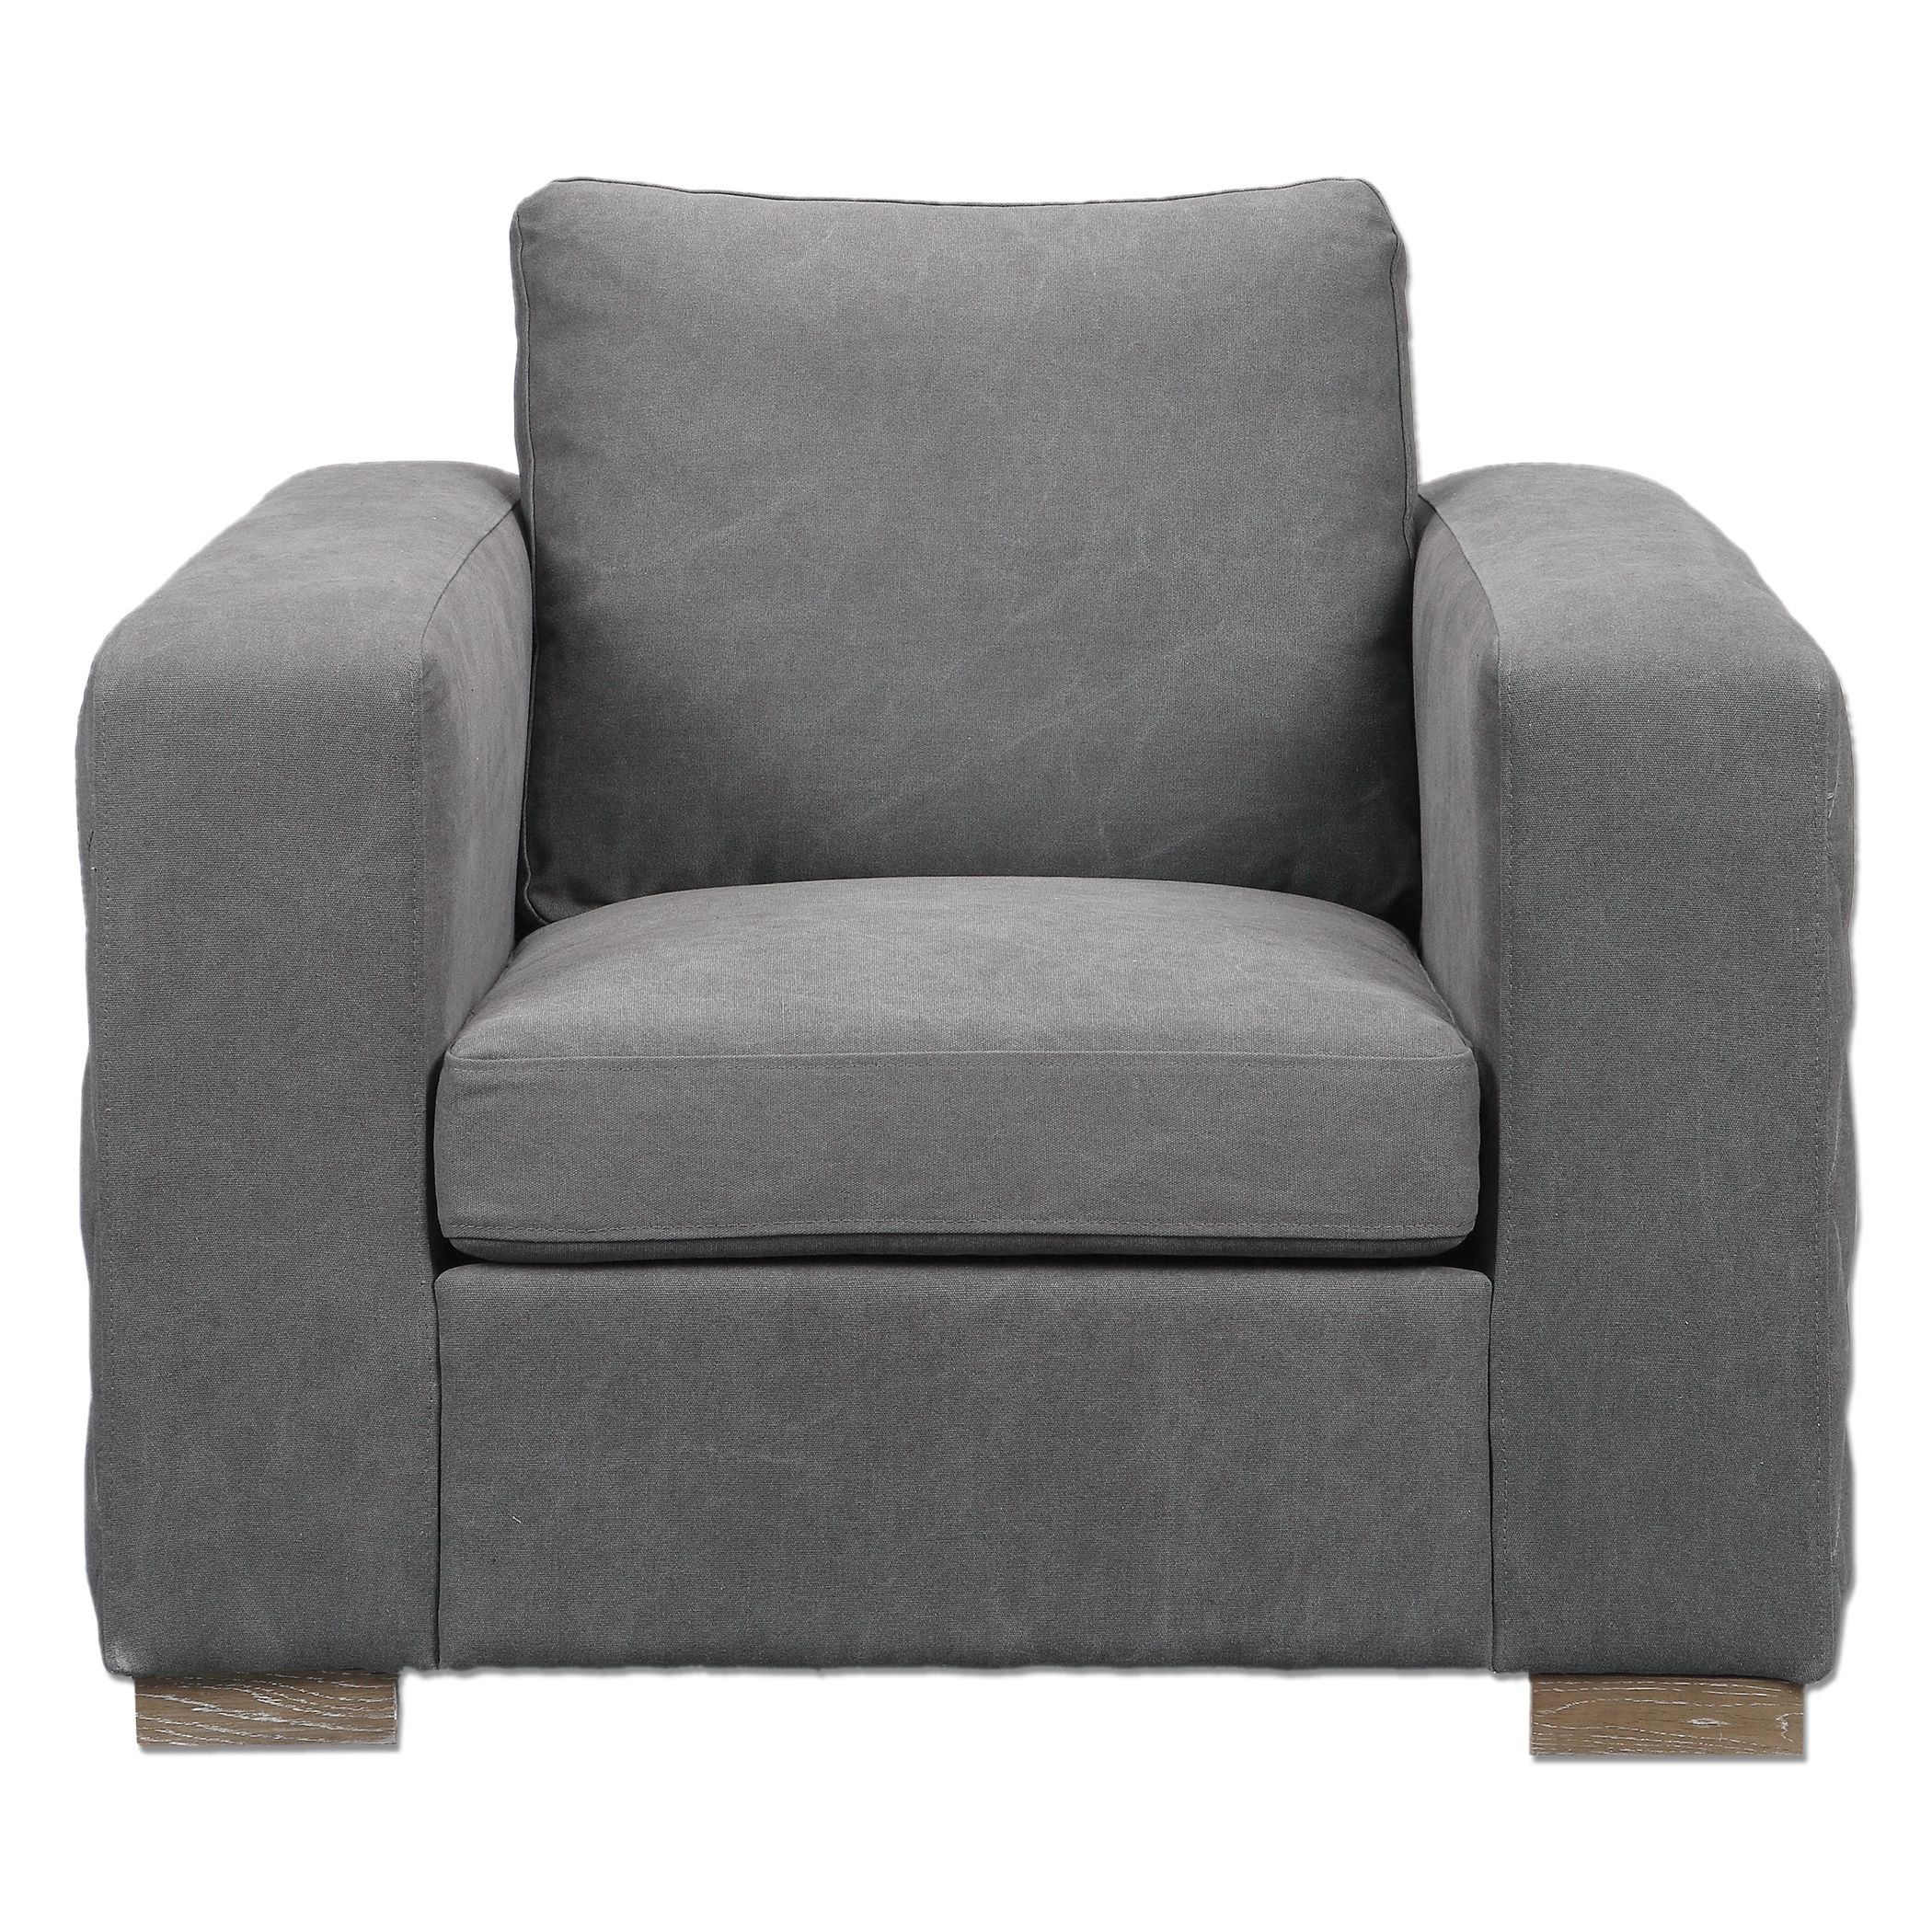 Uttermost Accent Furniture Inari Stonewashed Gray Armchair - Item Number: 23260